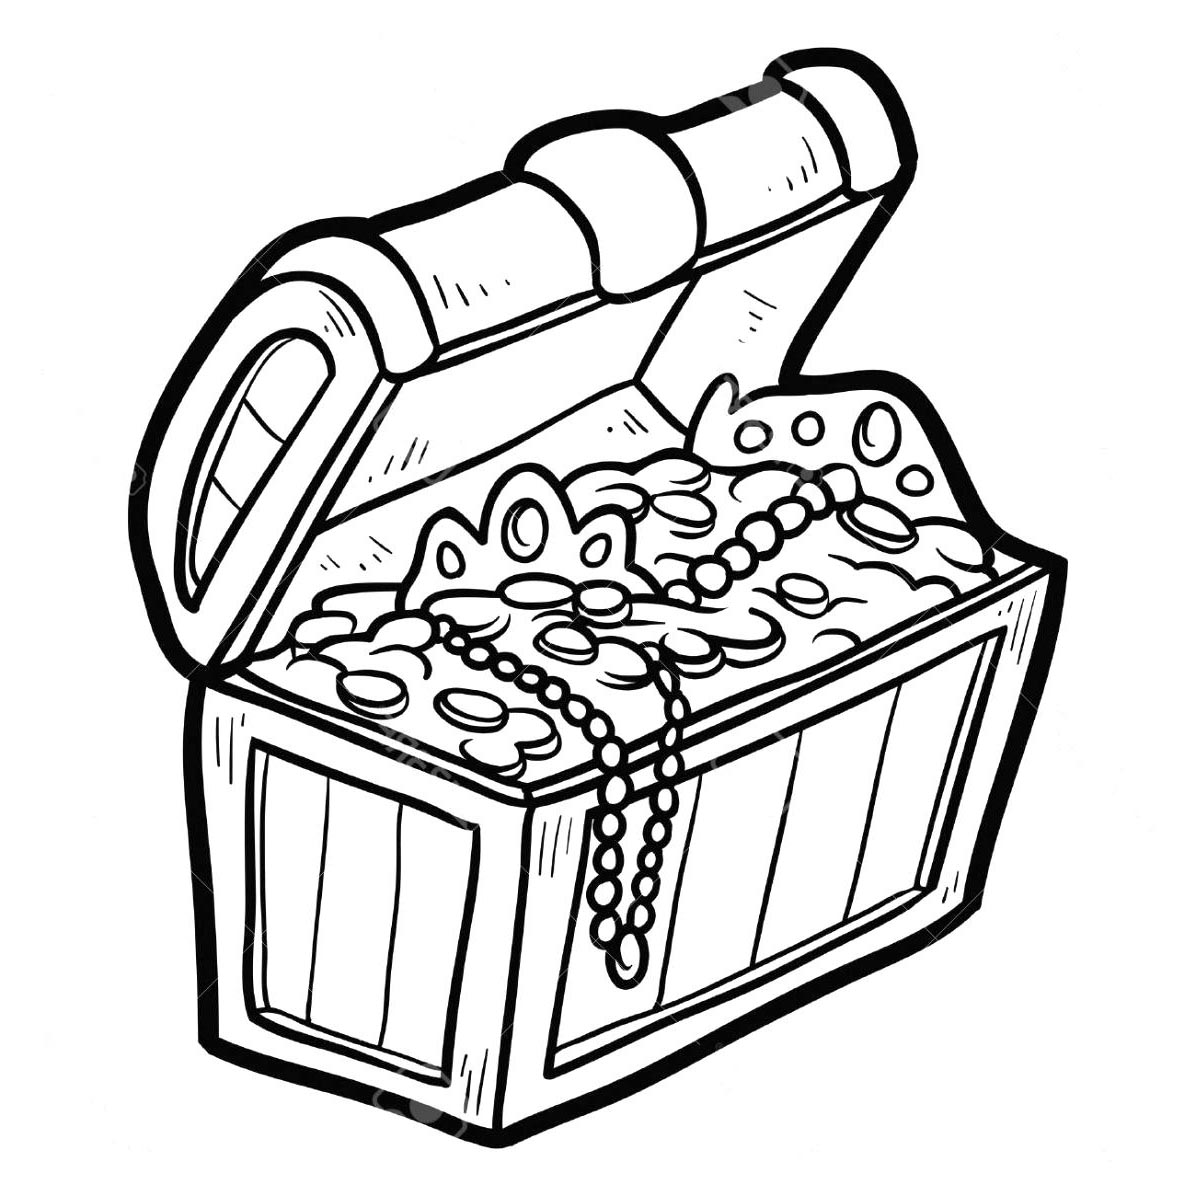 Free Treasure Chest Coloring Pages Black and White printable